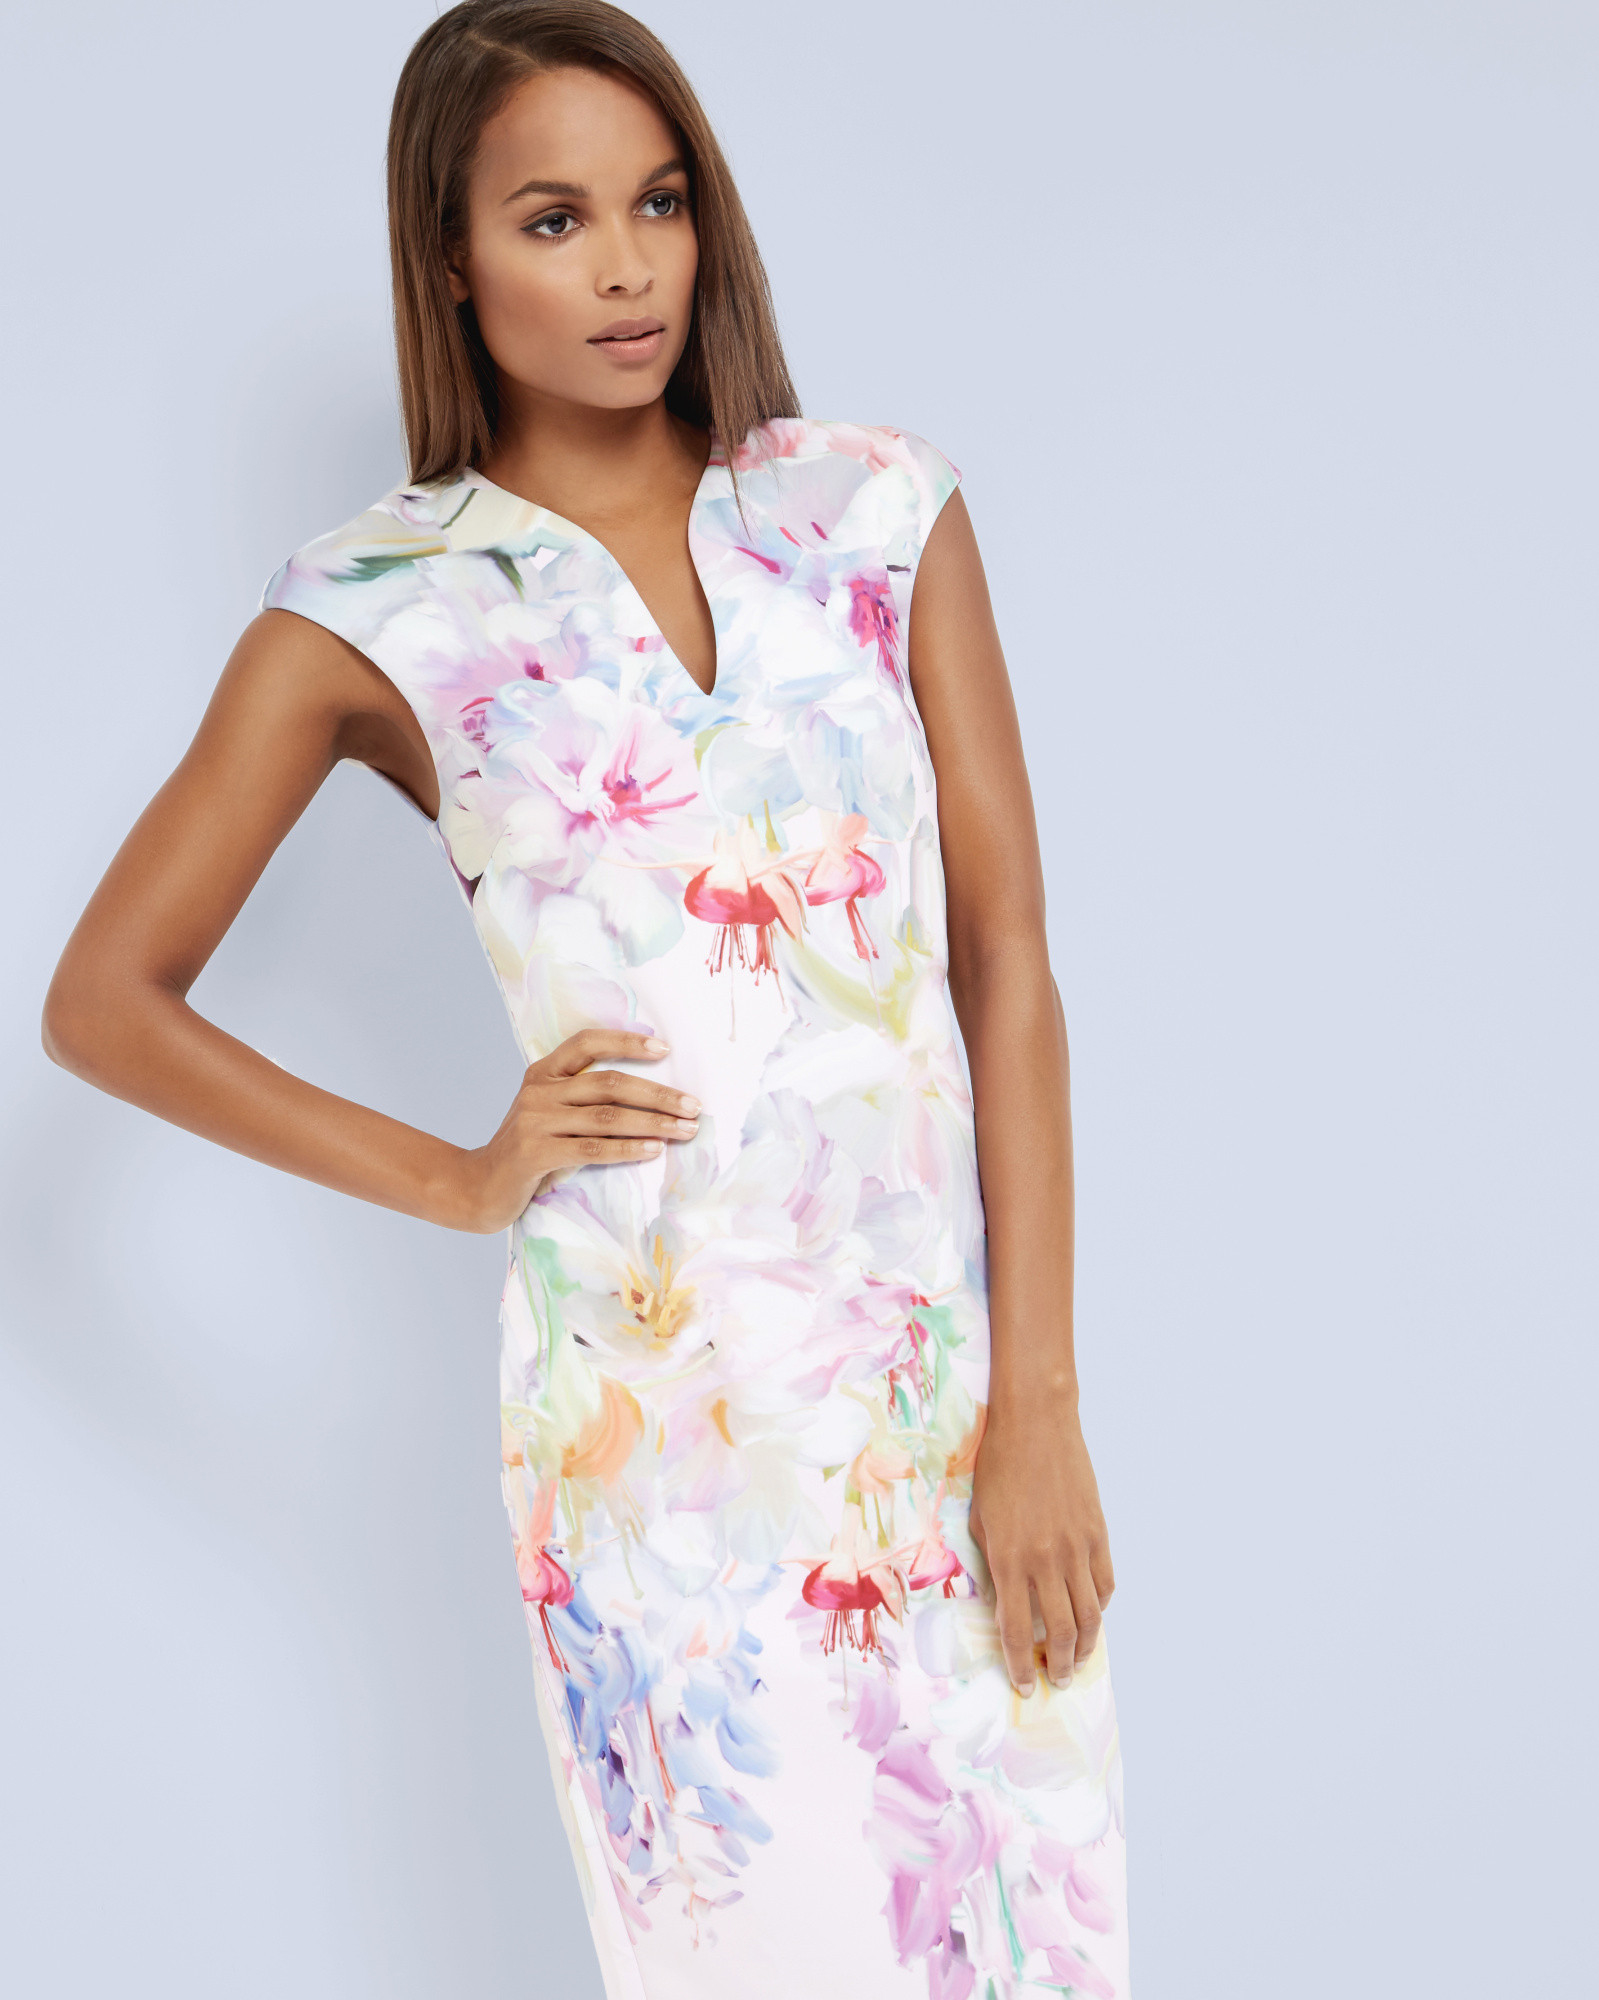 Ted baker pink bodycon dress new